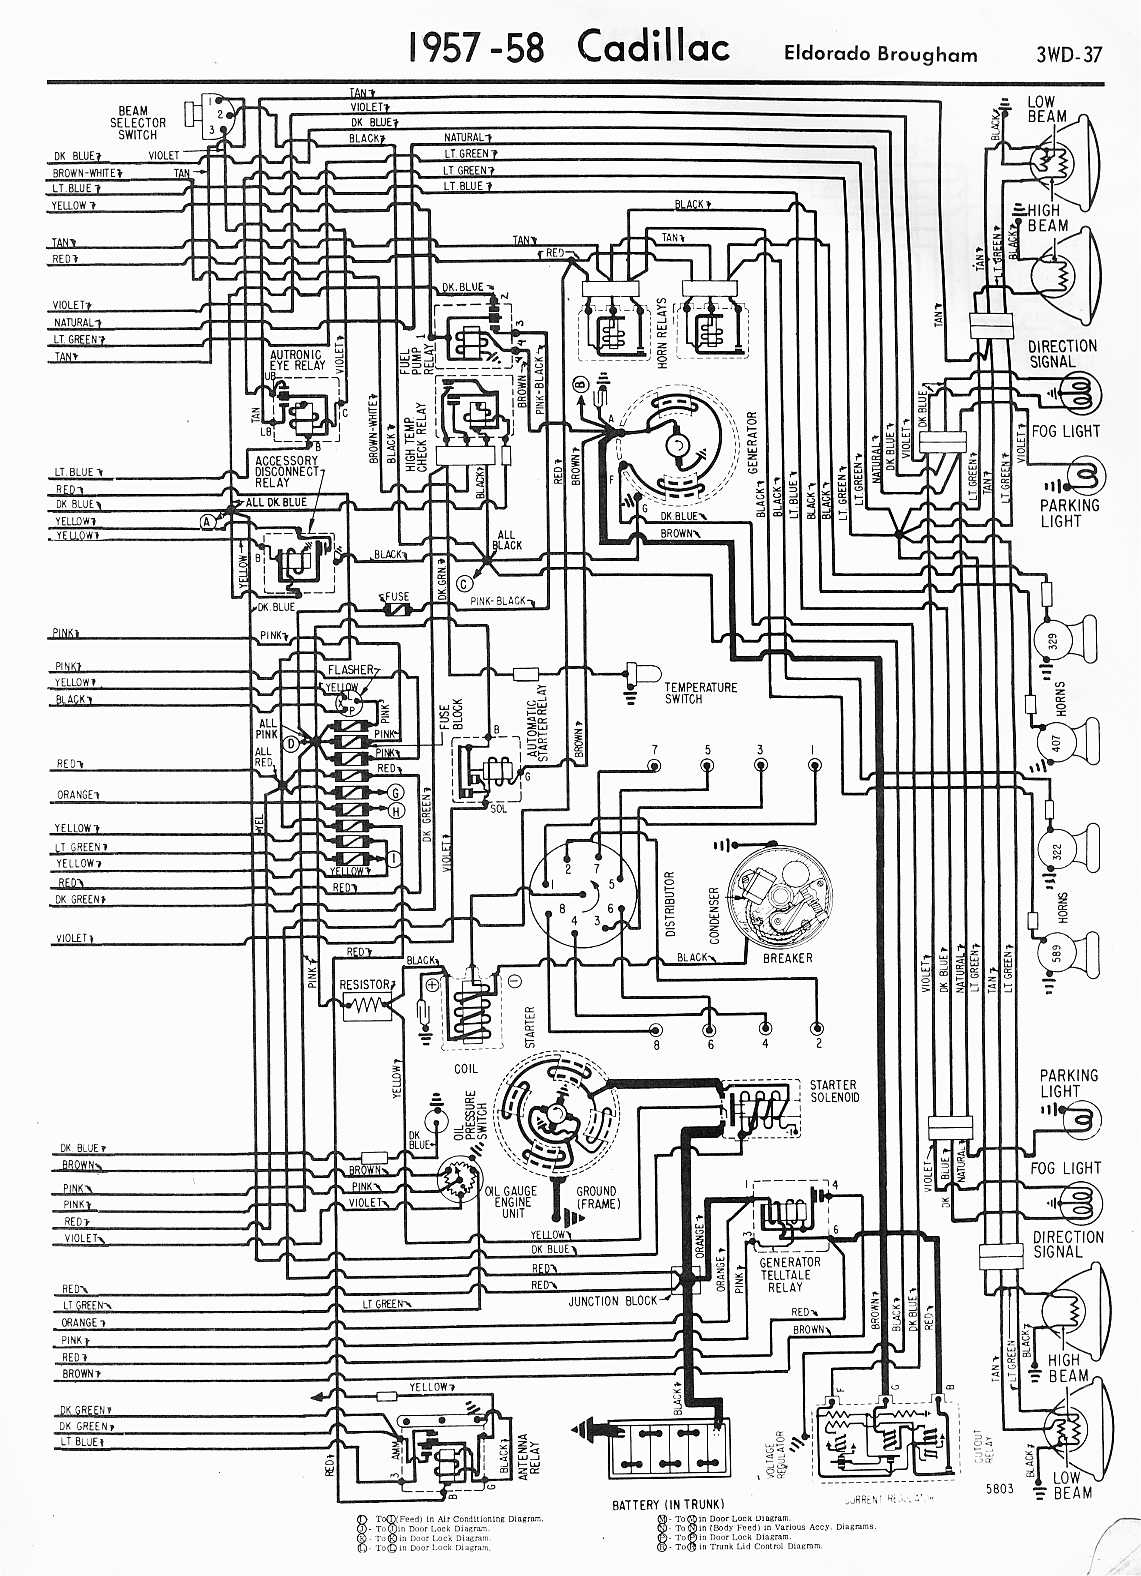 diagram] 1973 cadillac eldorado wiring diagram full version hd quality wiring  diagram - meiosisschematic5804.contrabbassiverdiani.it  contrabbassi di simone e damiano verdiani